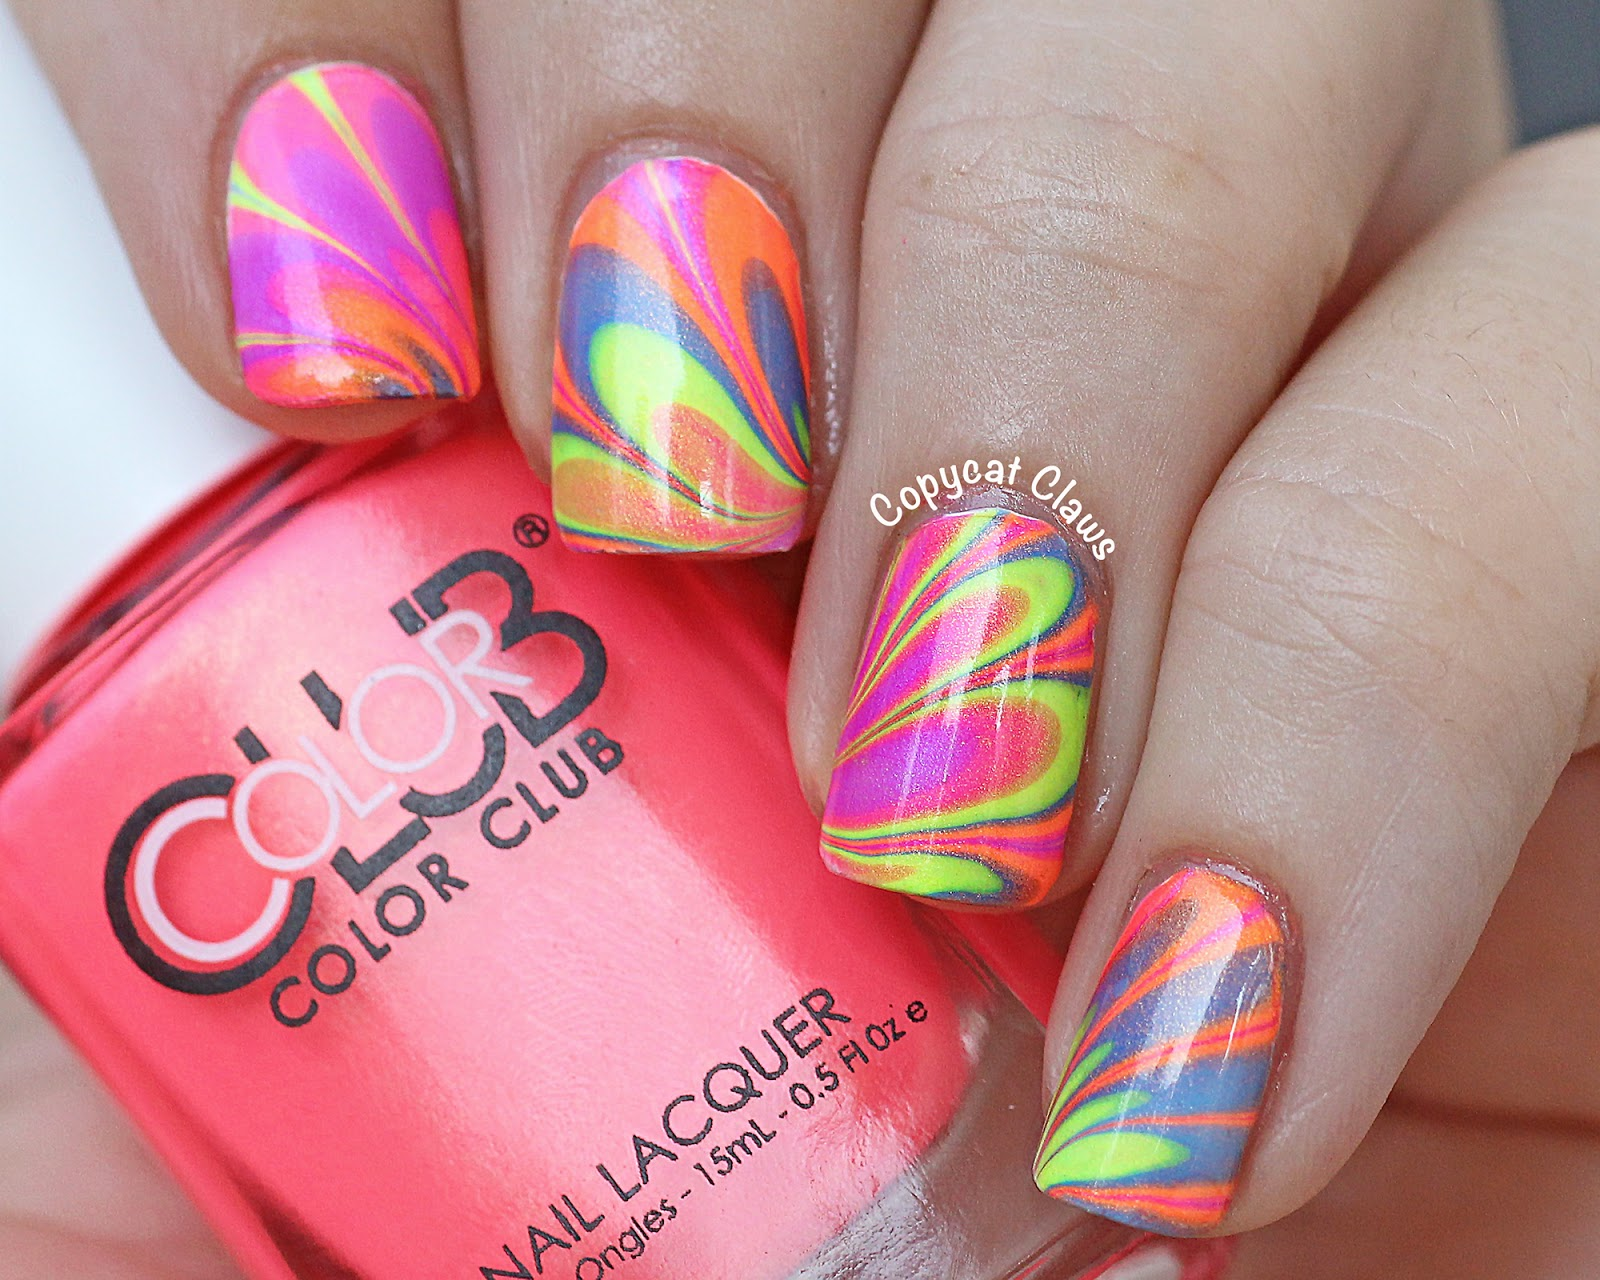 Water Nail Art: Copycat Claws: Color Club Poptastic Neon Water Marble Nail Art